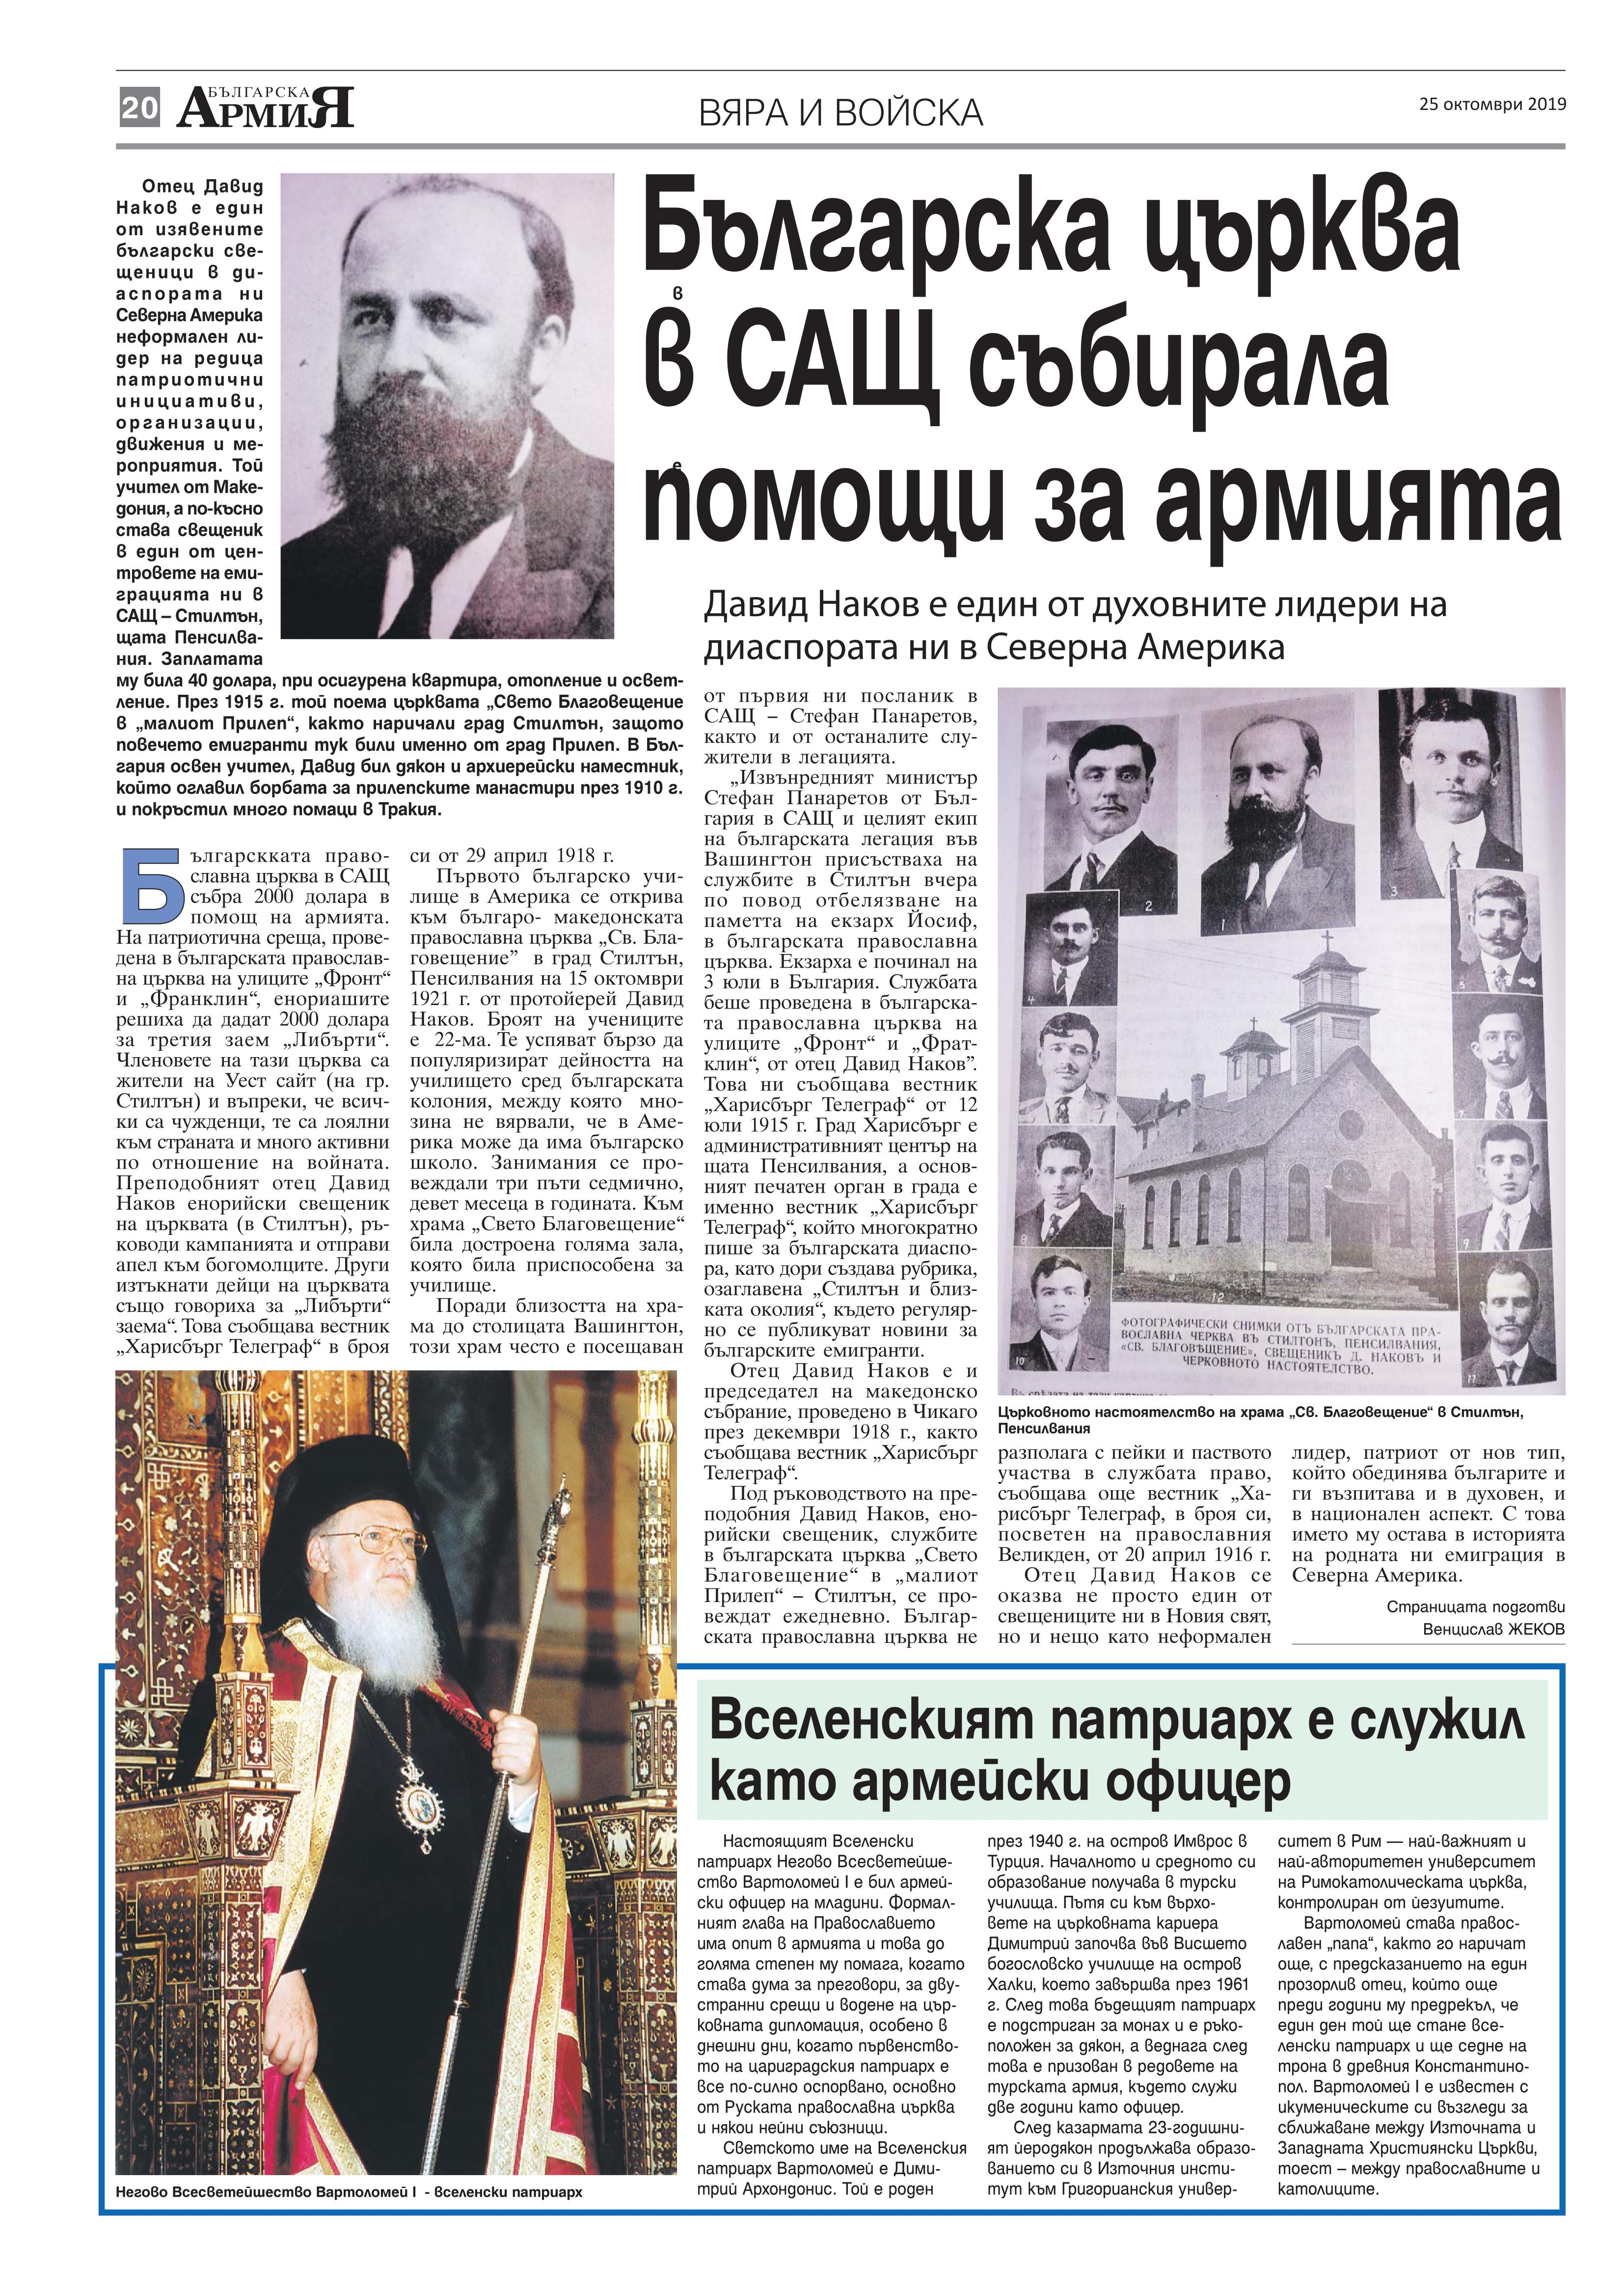 https://www.armymedia.bg/wp-content/uploads/2015/06/20.page1_-113.jpg